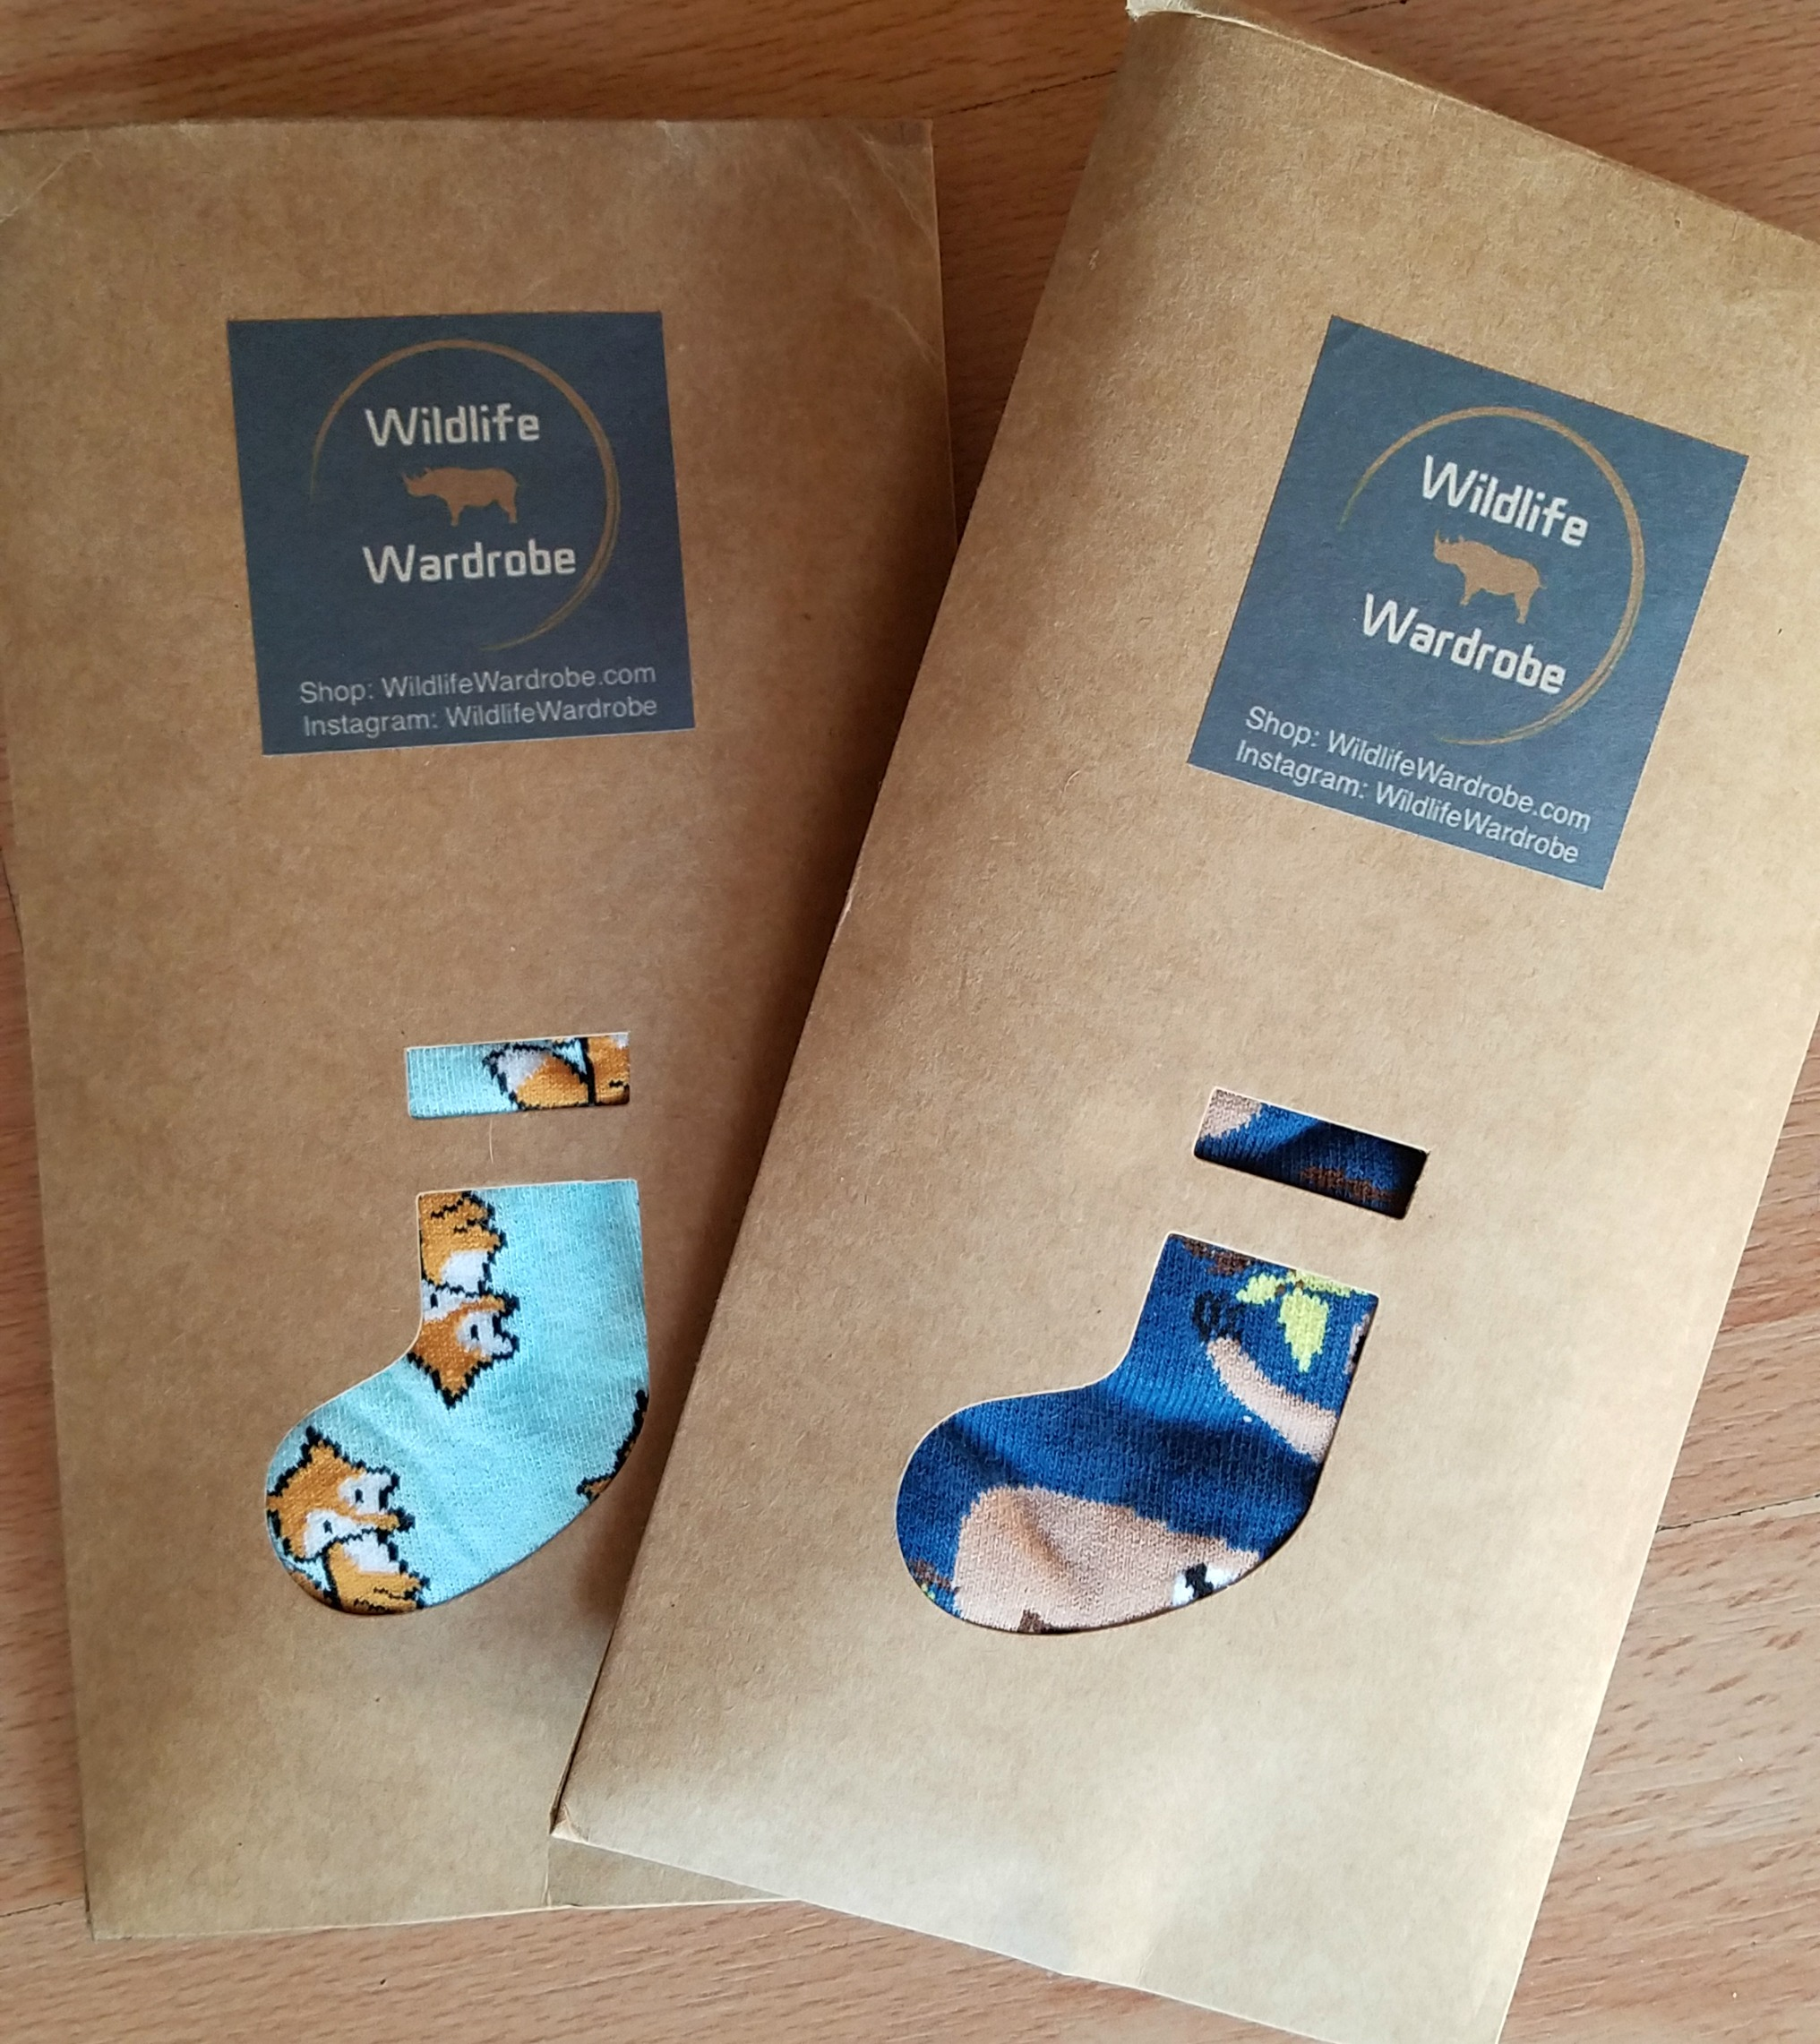 All Wildlife Wardrobe socks come in biodegradable and recyclable packaging!